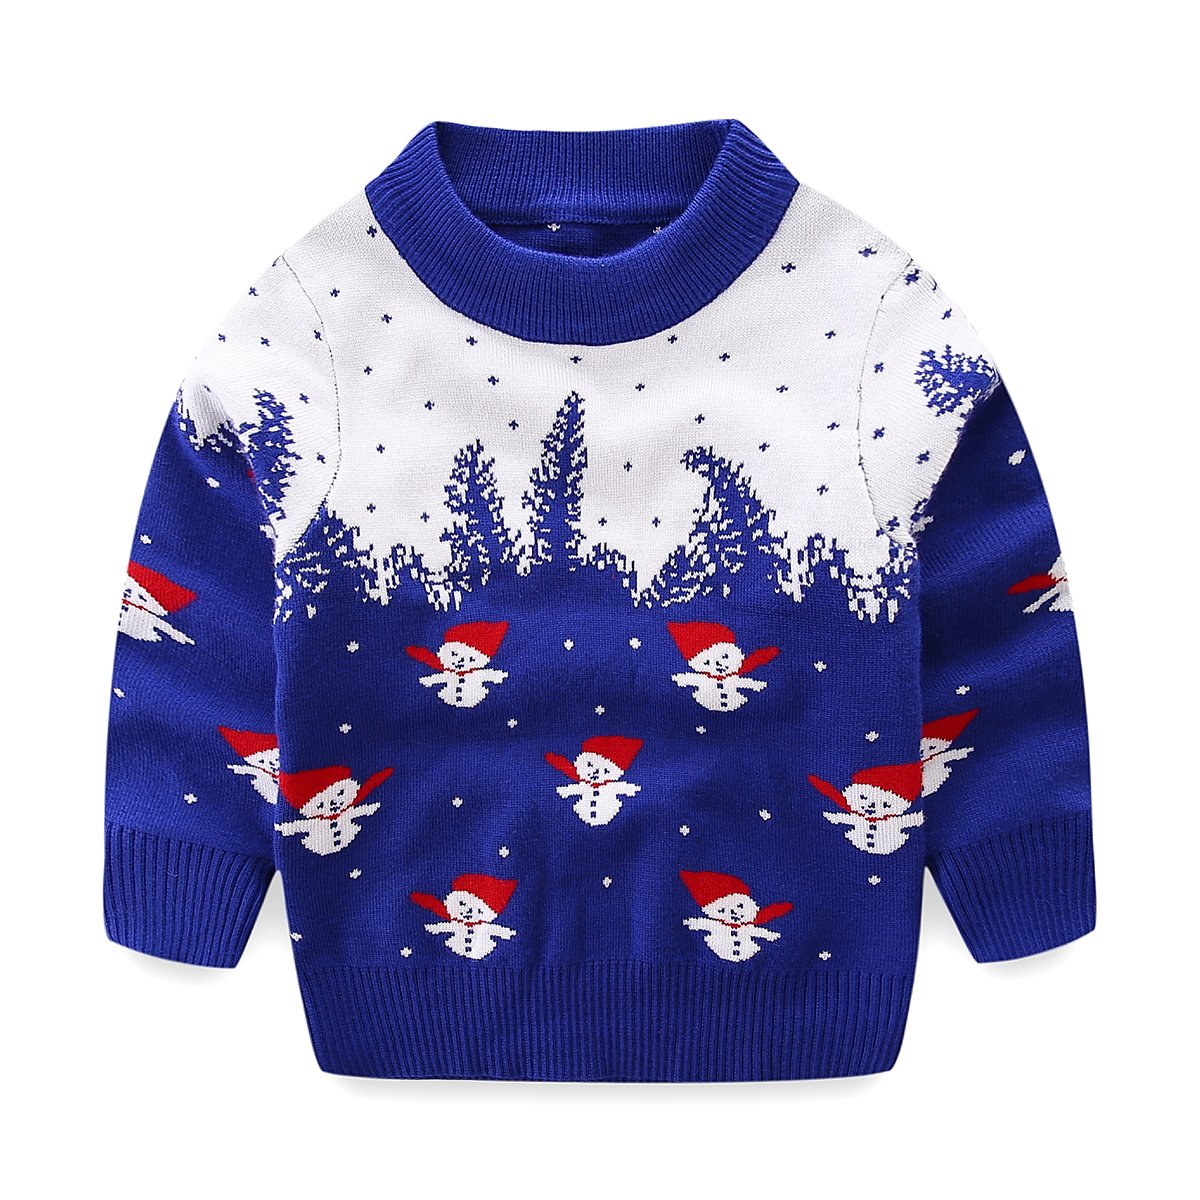 Mud Kingdom Little Boys Blue Christmas Sweaters Snowman ZS0504